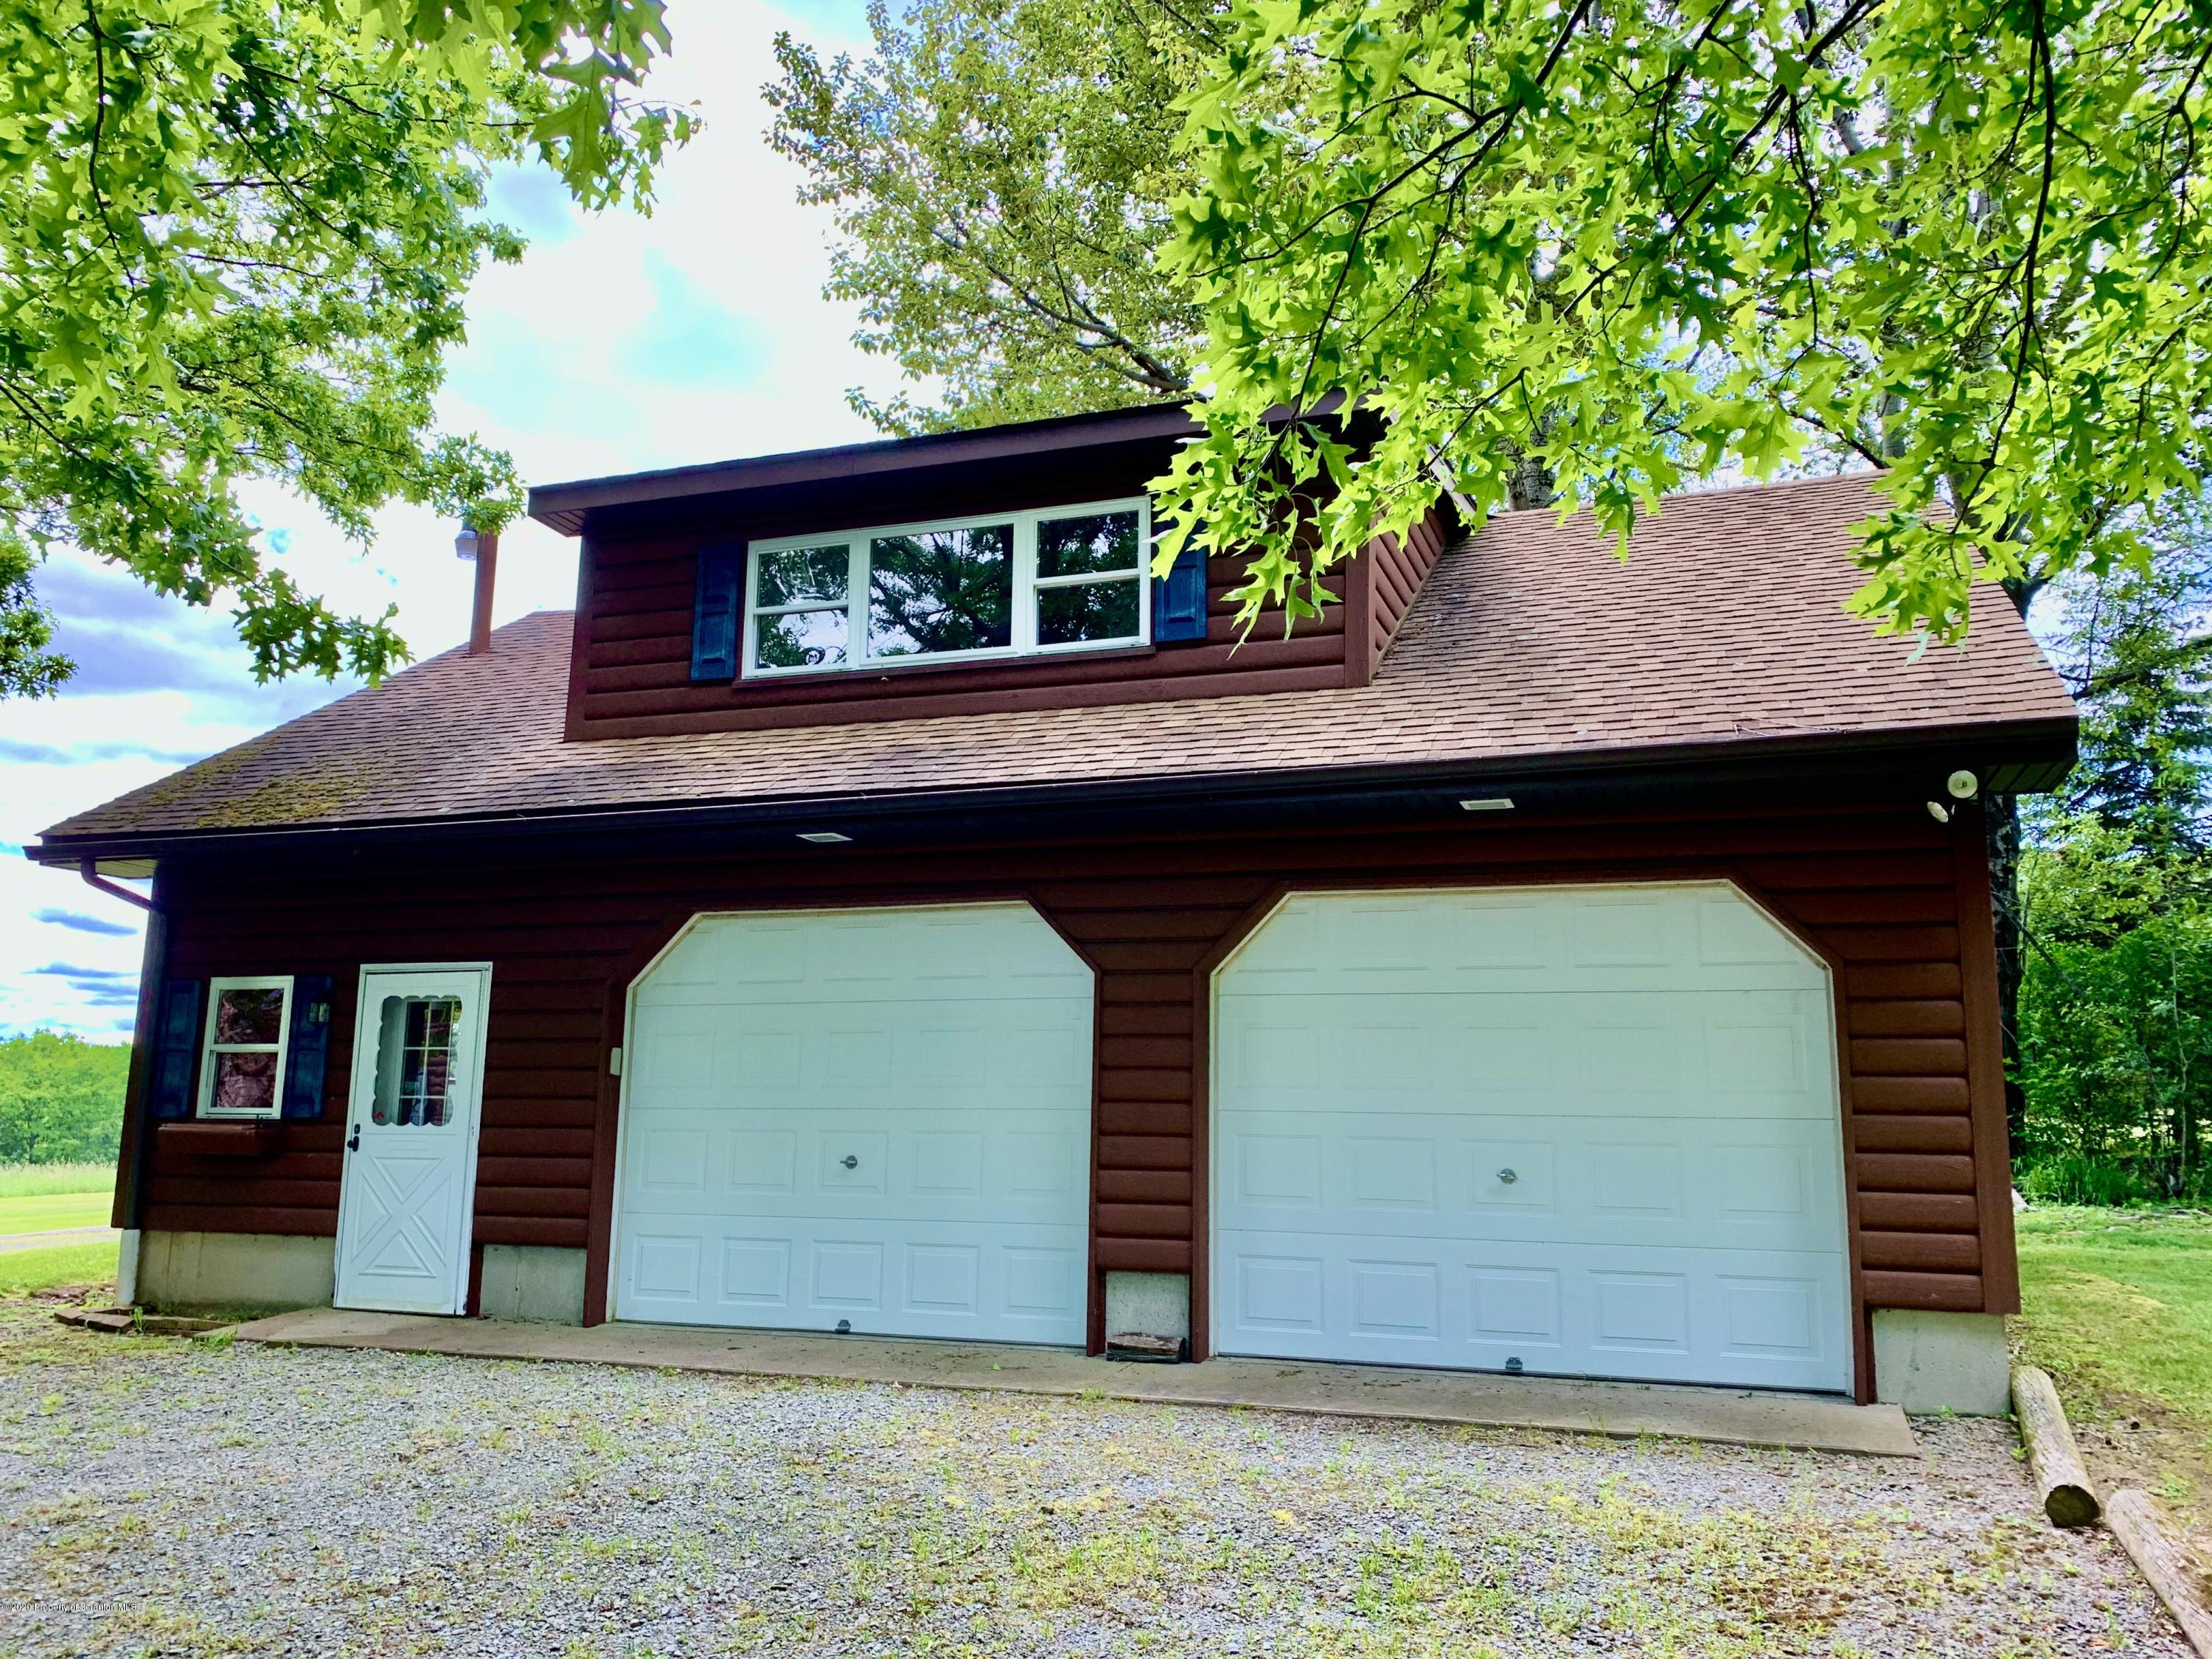 2590 POTTER HILL RD, Thompson, Pennsylvania 18465, 2 Bedrooms Bedrooms, 5 Rooms Rooms,2 BathroomsBathrooms,Single Family,For Sale,POTTER HILL,20-2215